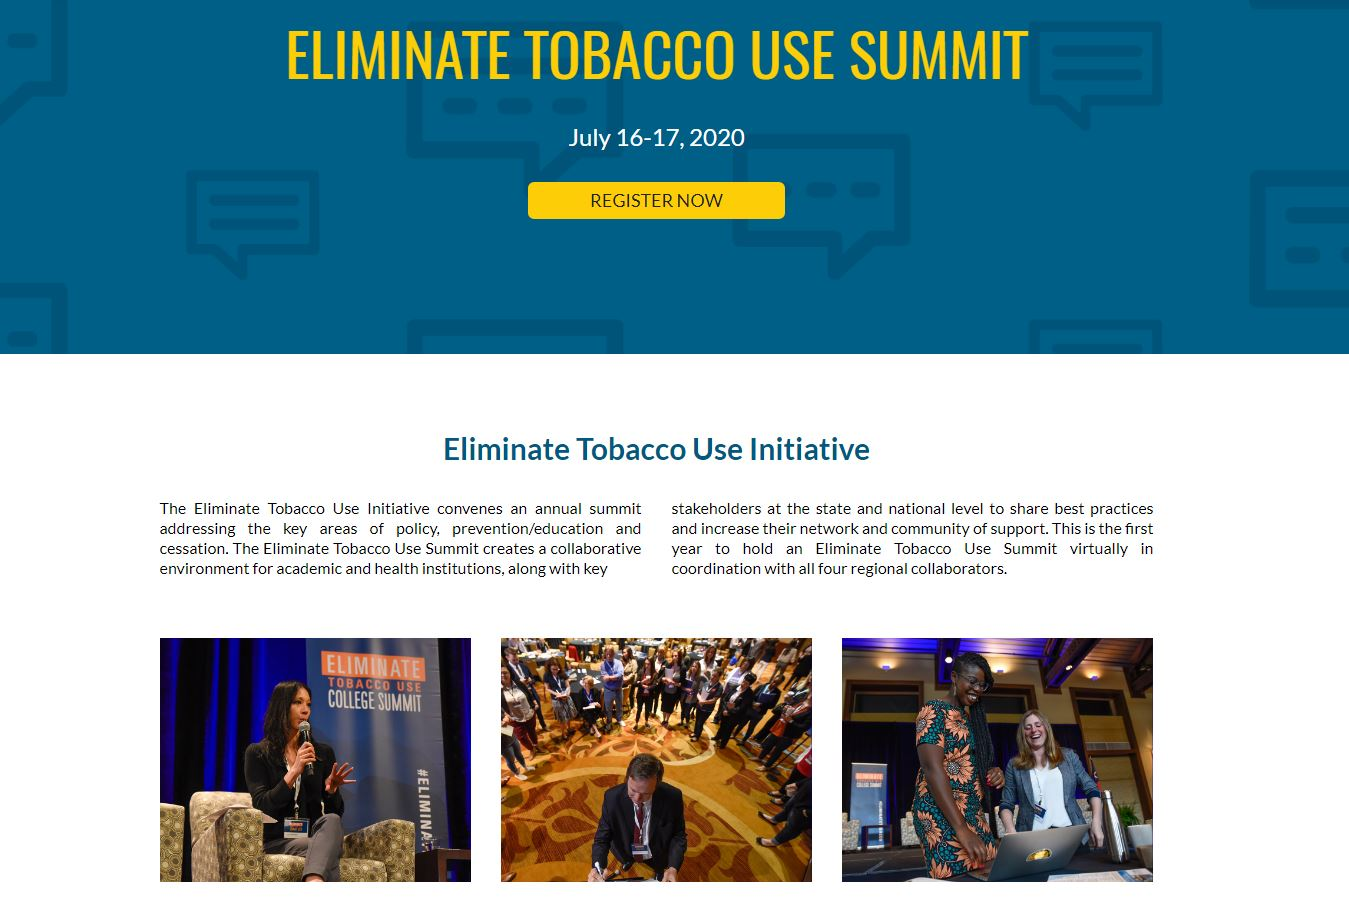 Tobacco summit